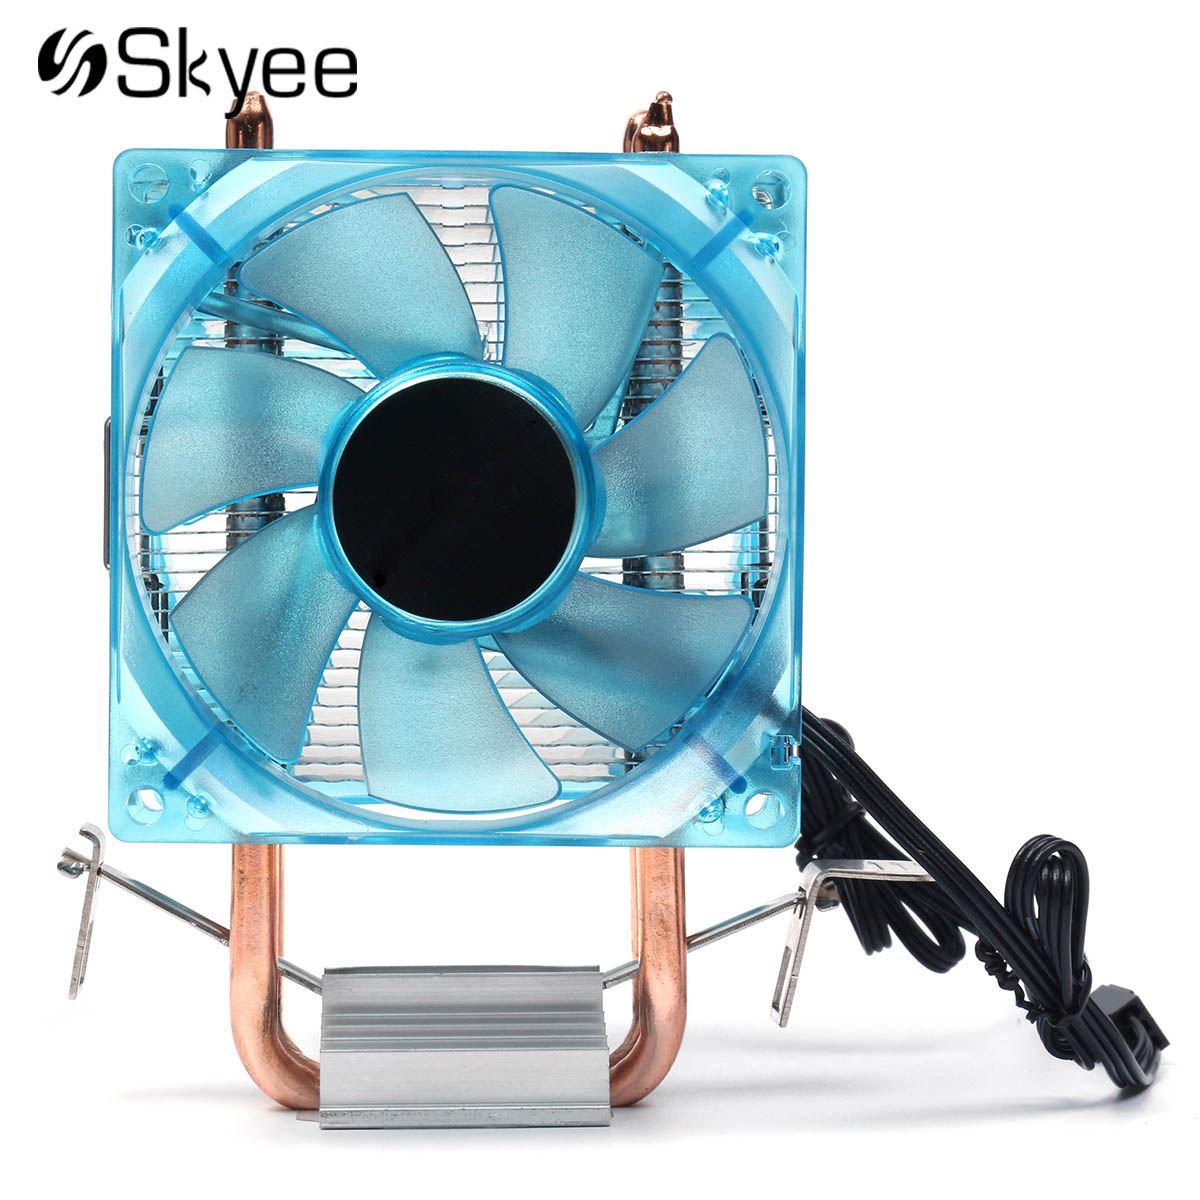 2018 LED CPU Cooling Fan 90mm Dual Copper Pipe Aluminum Heatsink Cooler Cooling Fan for AMD FM1 AM2 + AM3 +Intel 775 1155 1156 three cpu cooler fan 4 copper pipe cooling fan red led aluminum heatsink for intel lga775 1156 1155 amd am2 am2 am3 ed